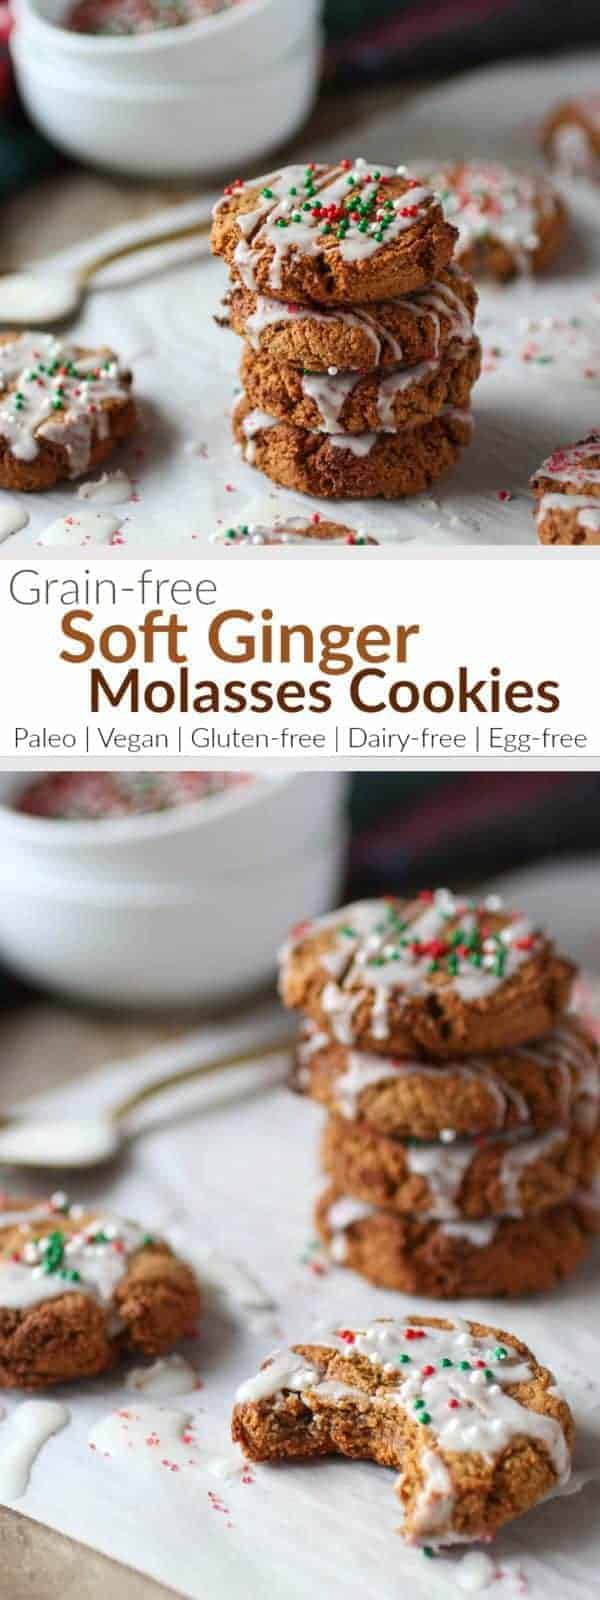 Grain-free Soft Ginger Molasses Cookies | Tis' the season for Holiday treats galore! These cookies are a divine, melt-in-your-mouth, soft grain-free cookie. They're drizzled with melted coconut butter and topped with holiday sprinkles. Make them vegan/egg-free by replacing the one egg with a flax egg | Paleo | Vegan | Gluten-free | therealfoodrds.com